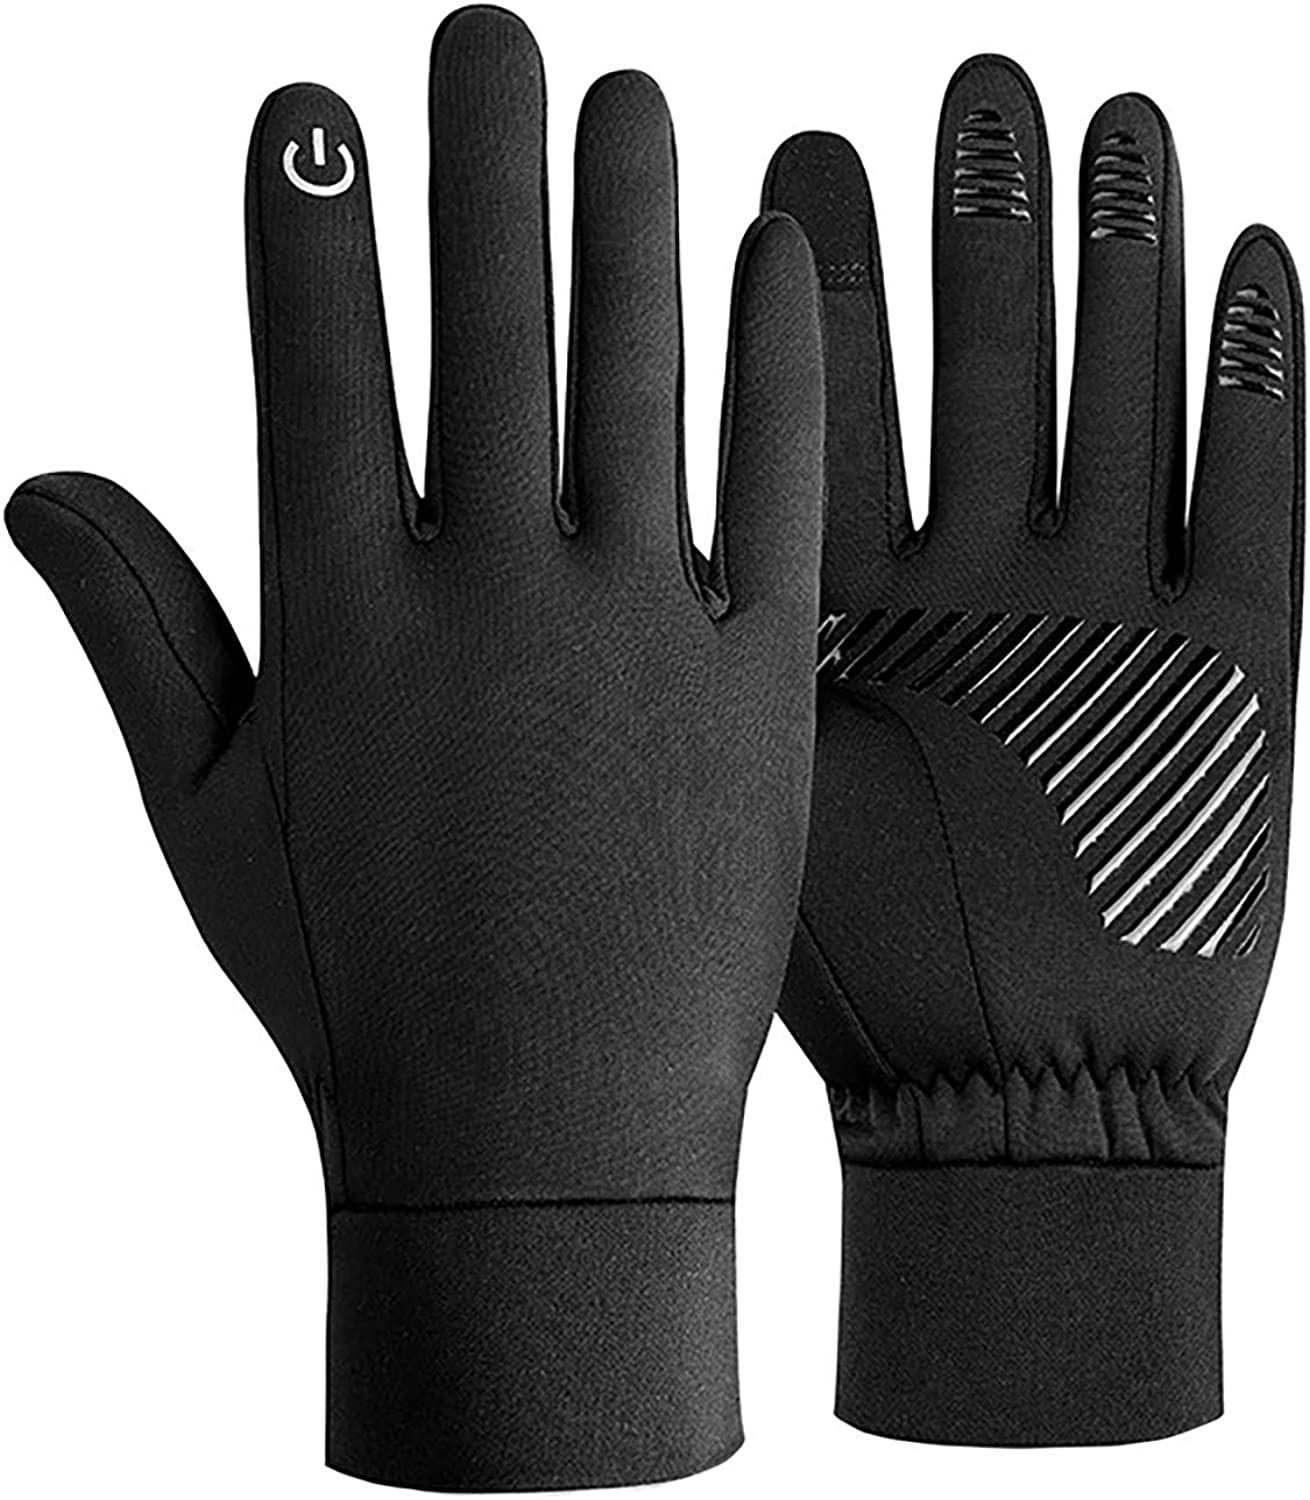 Windproof Touch Screen Gloves for Outdoor Sports in Winter, Windproof and Warm Gloves for Men and Women.